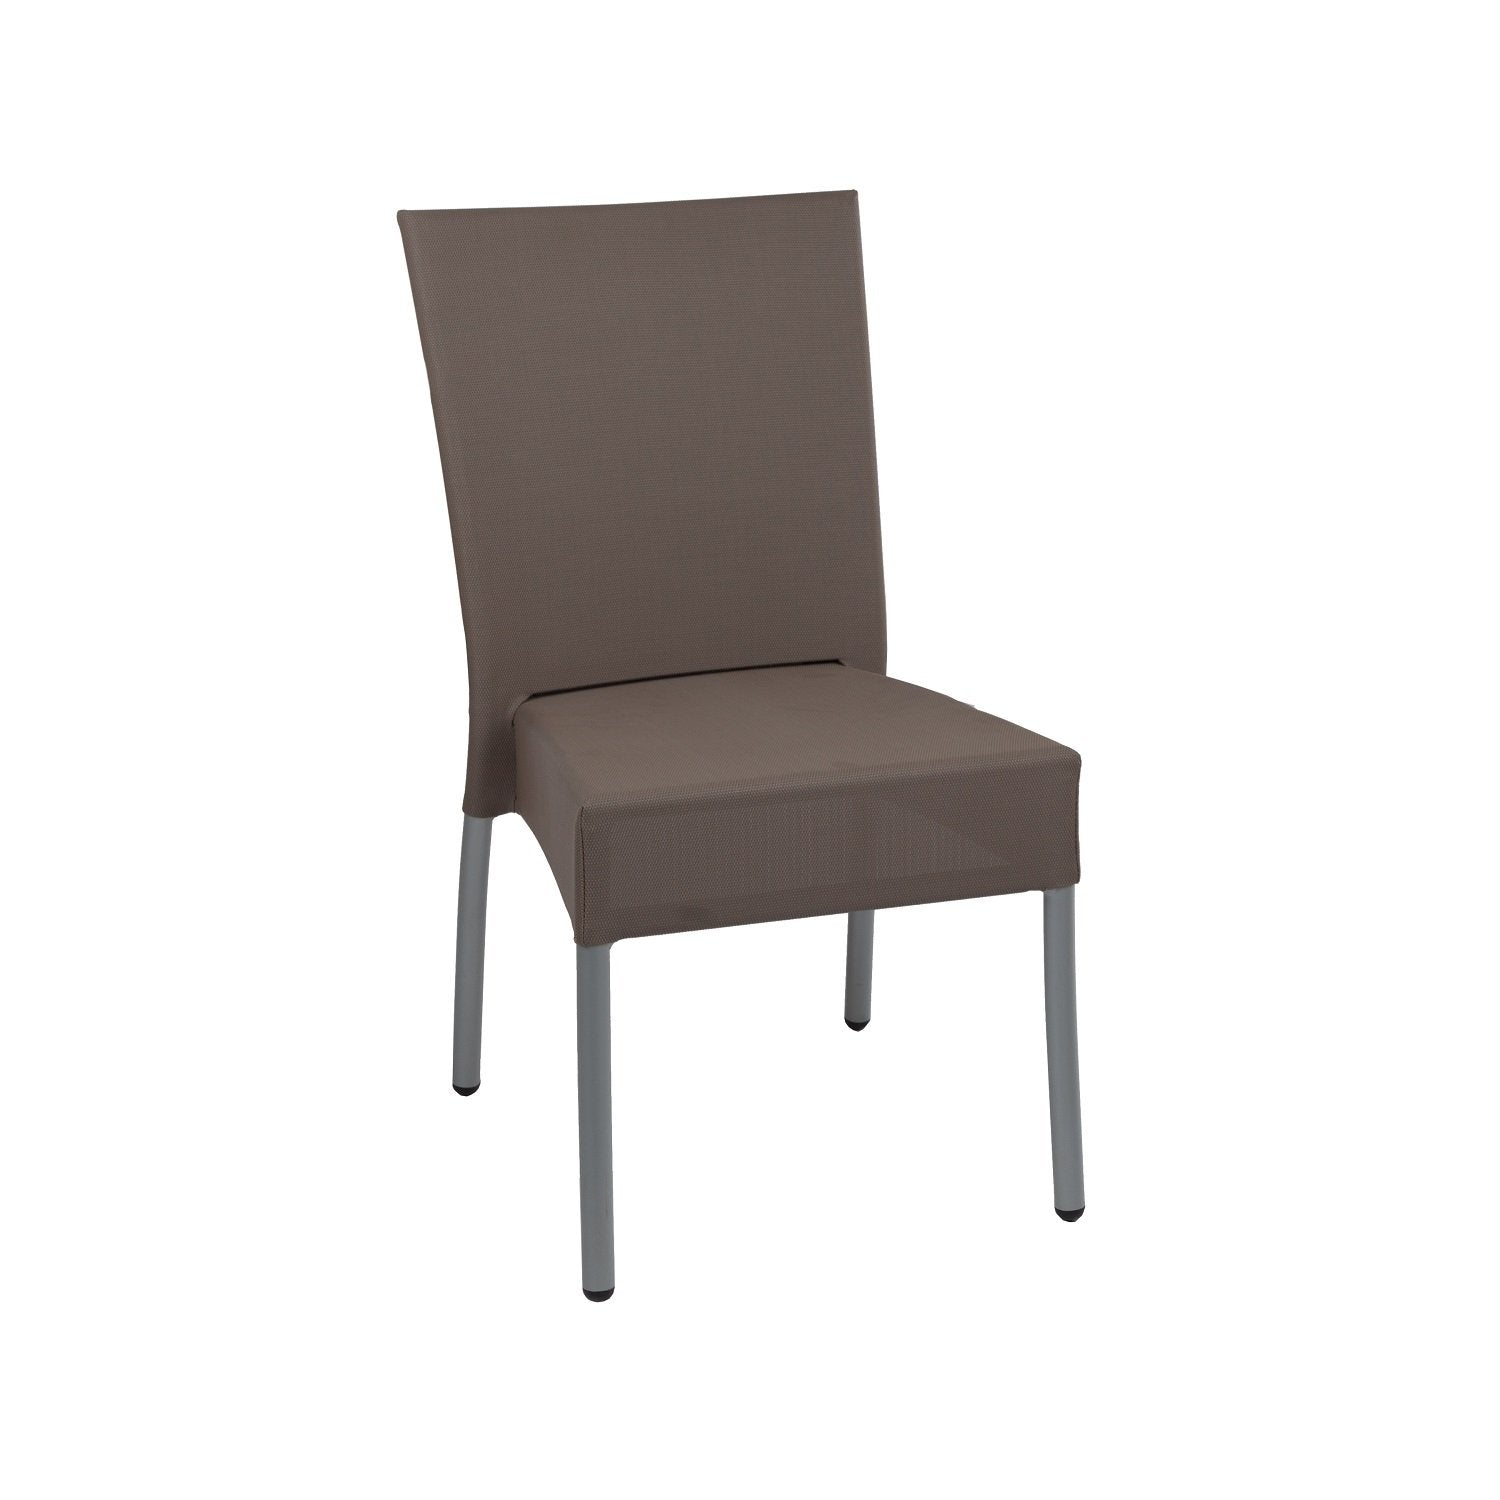 [FCC1801TAUPE] Daisy Outdoor side chair Sale